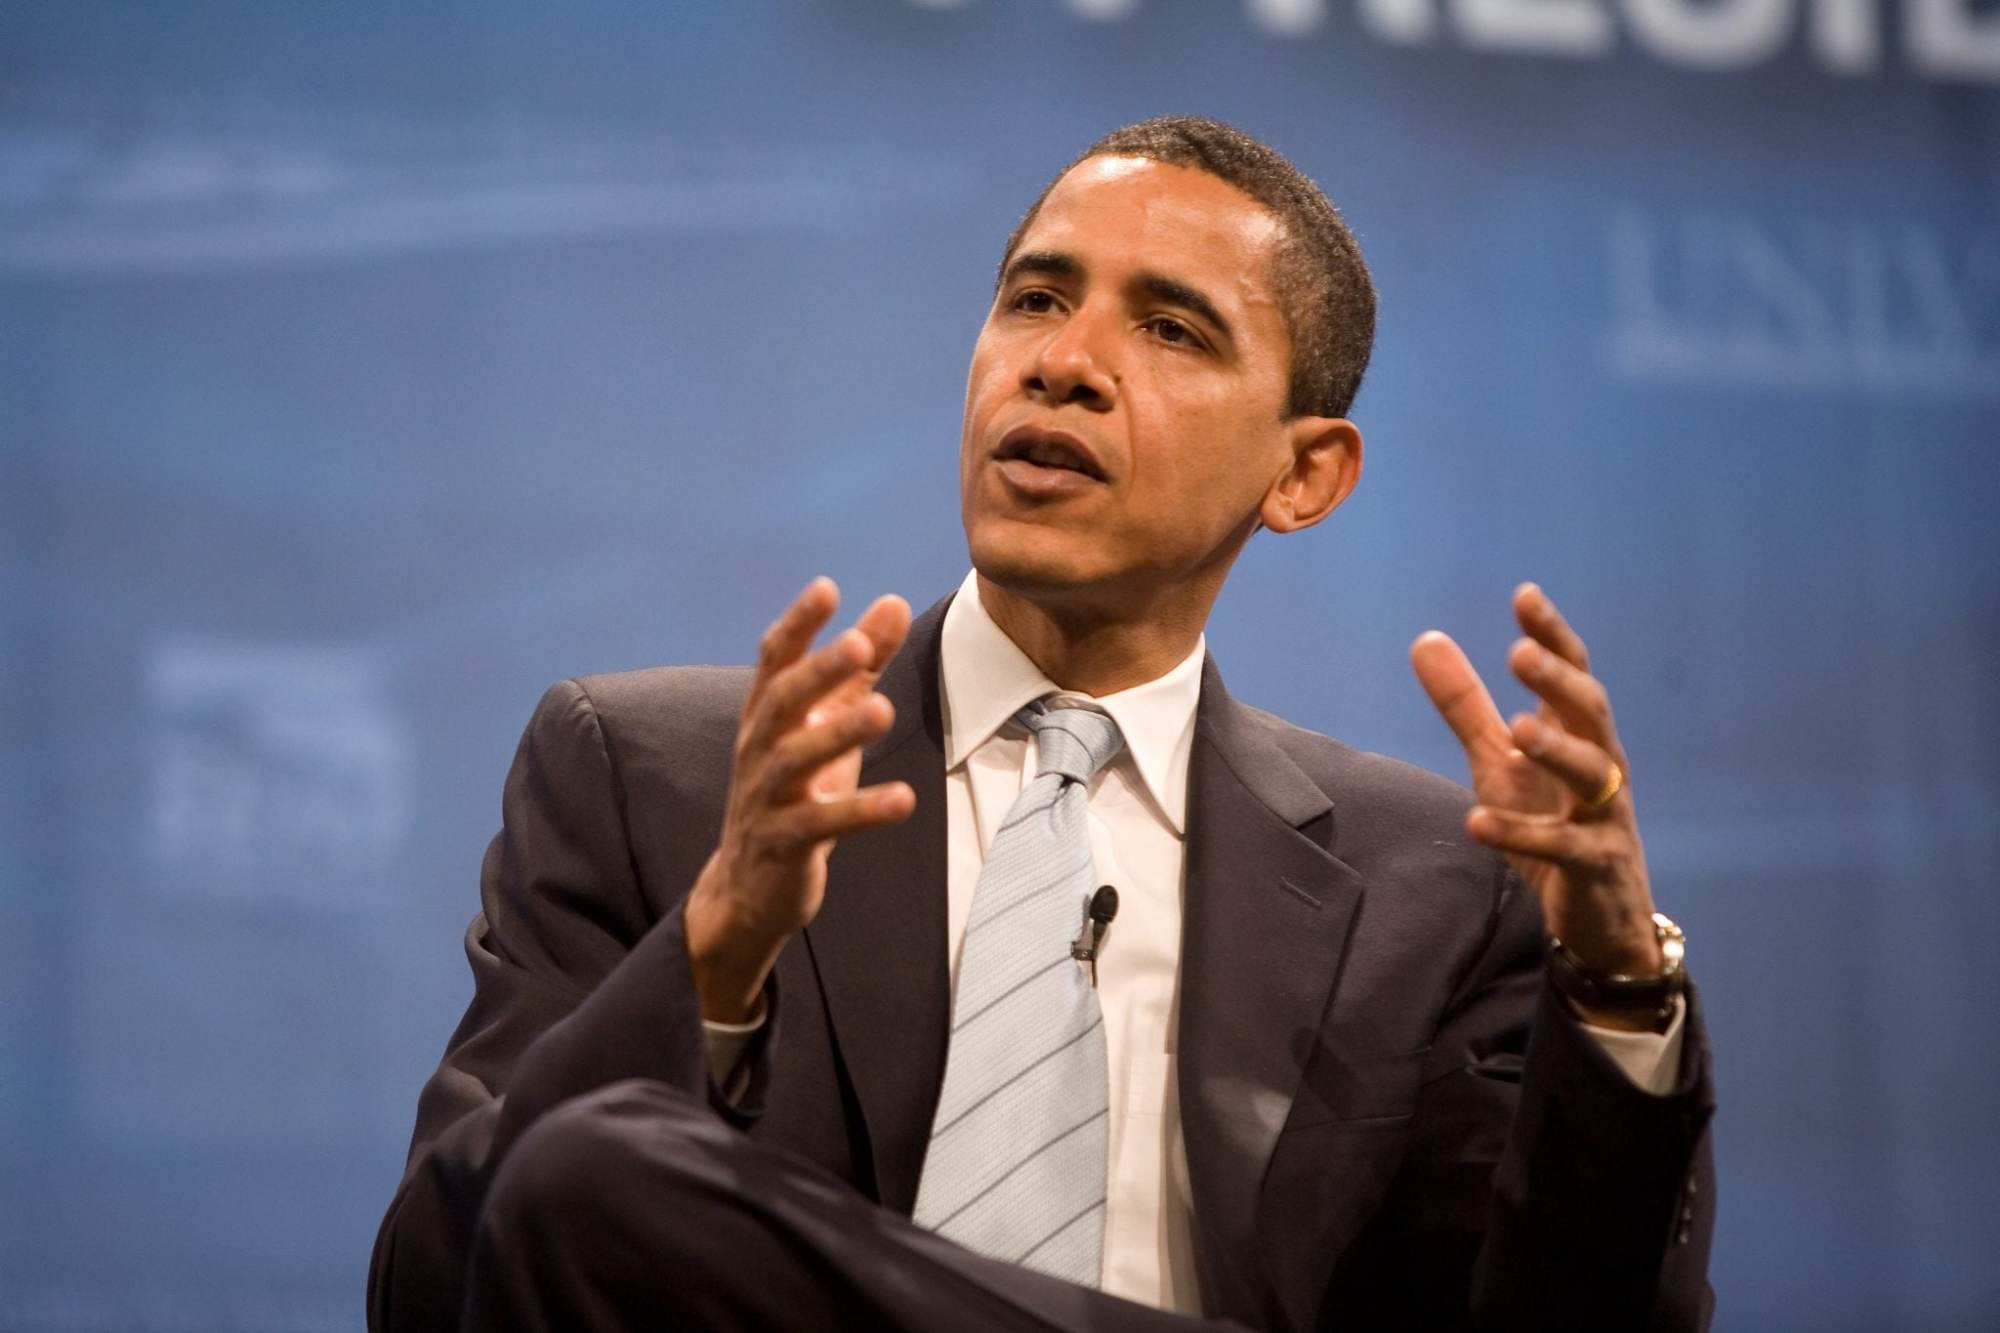 Obama: Climate Change Creating 'More Toxic' Politics, 'Scale of Tragedy We'll See' Is Unprecedented in History